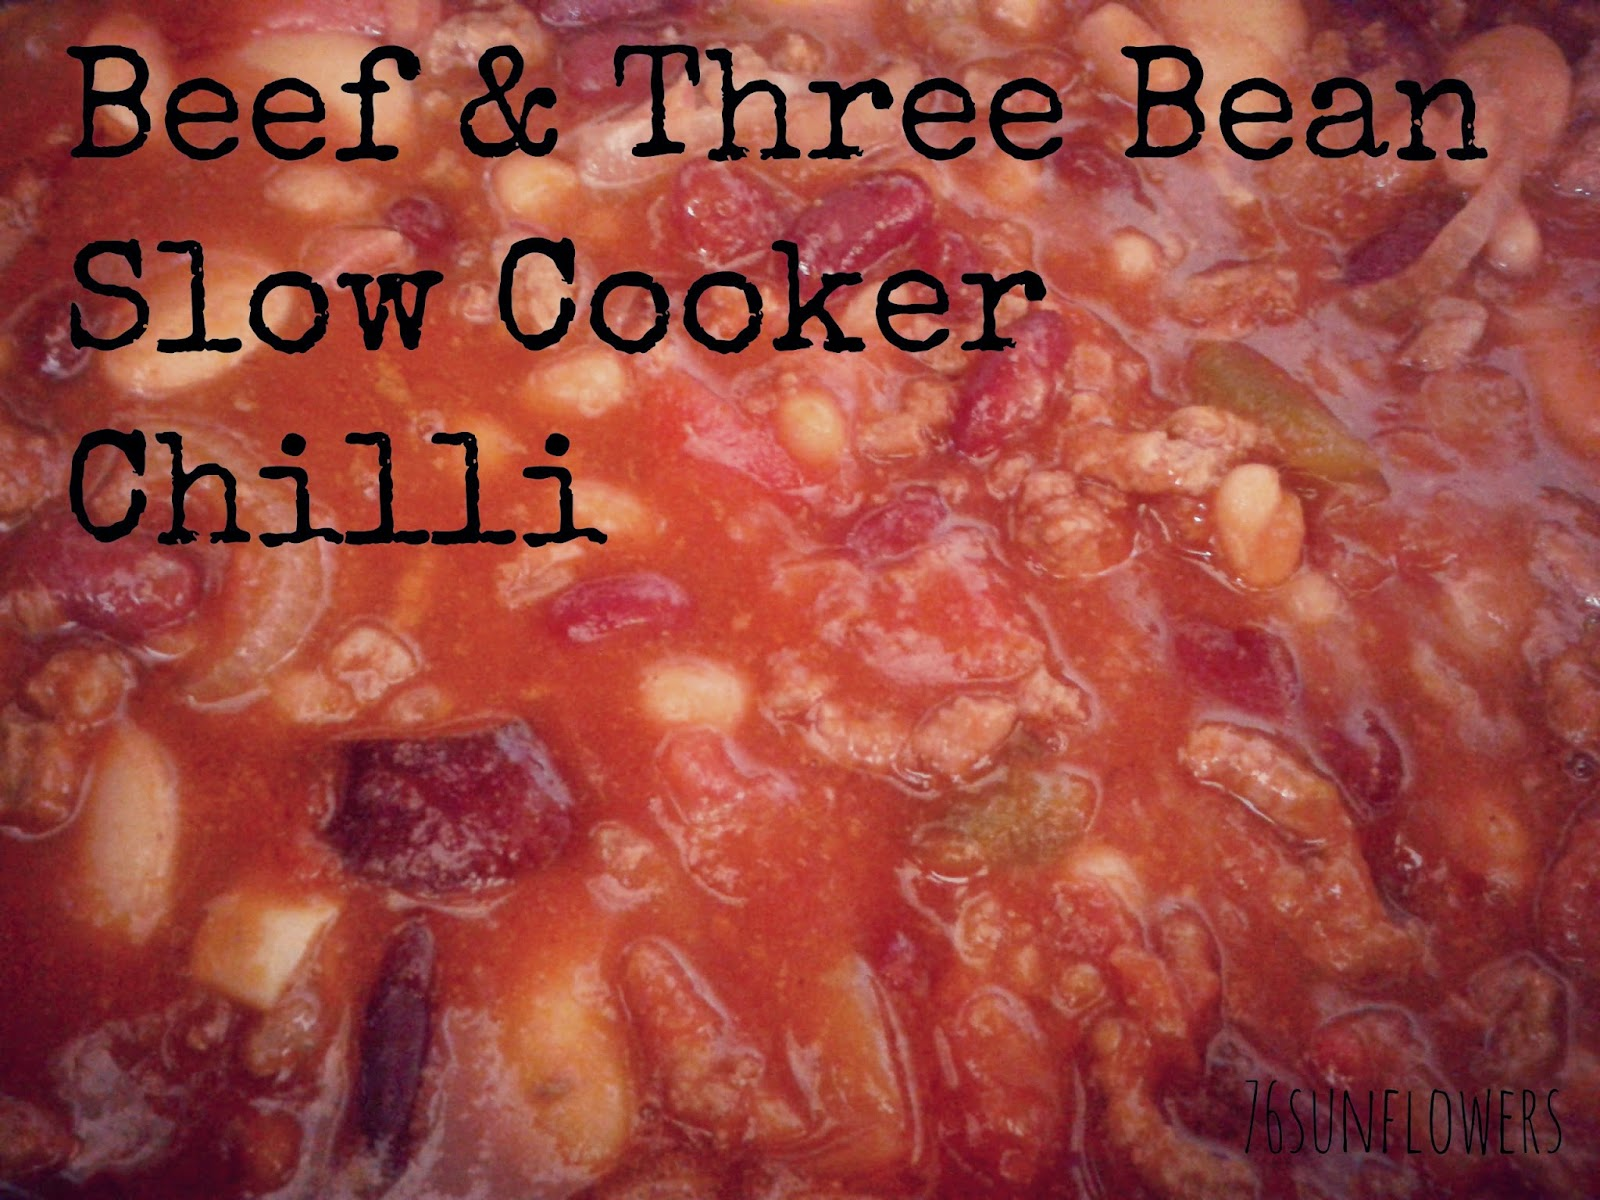 Beef & Three Bean Slow Cooker Chilli // 76sunflowers